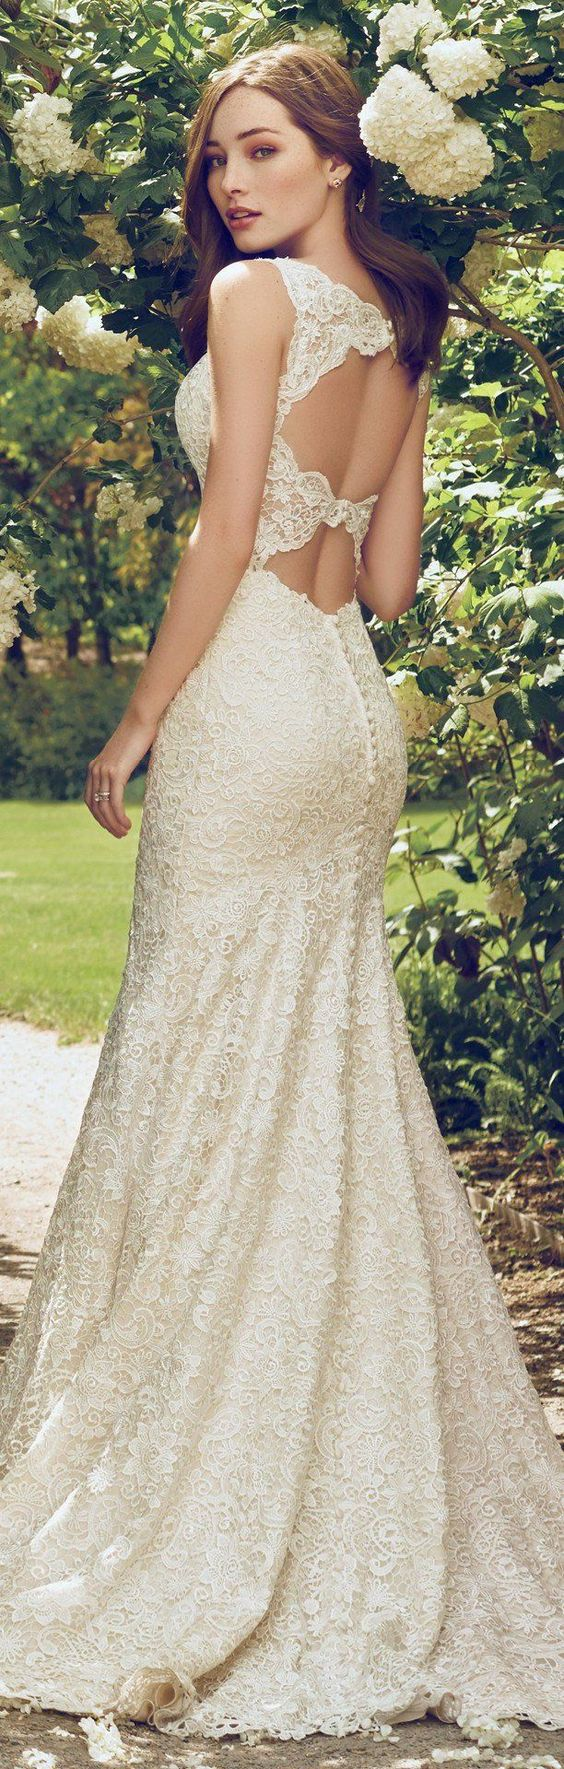 Stunning Open Back Wedding Dresses That Wow 011